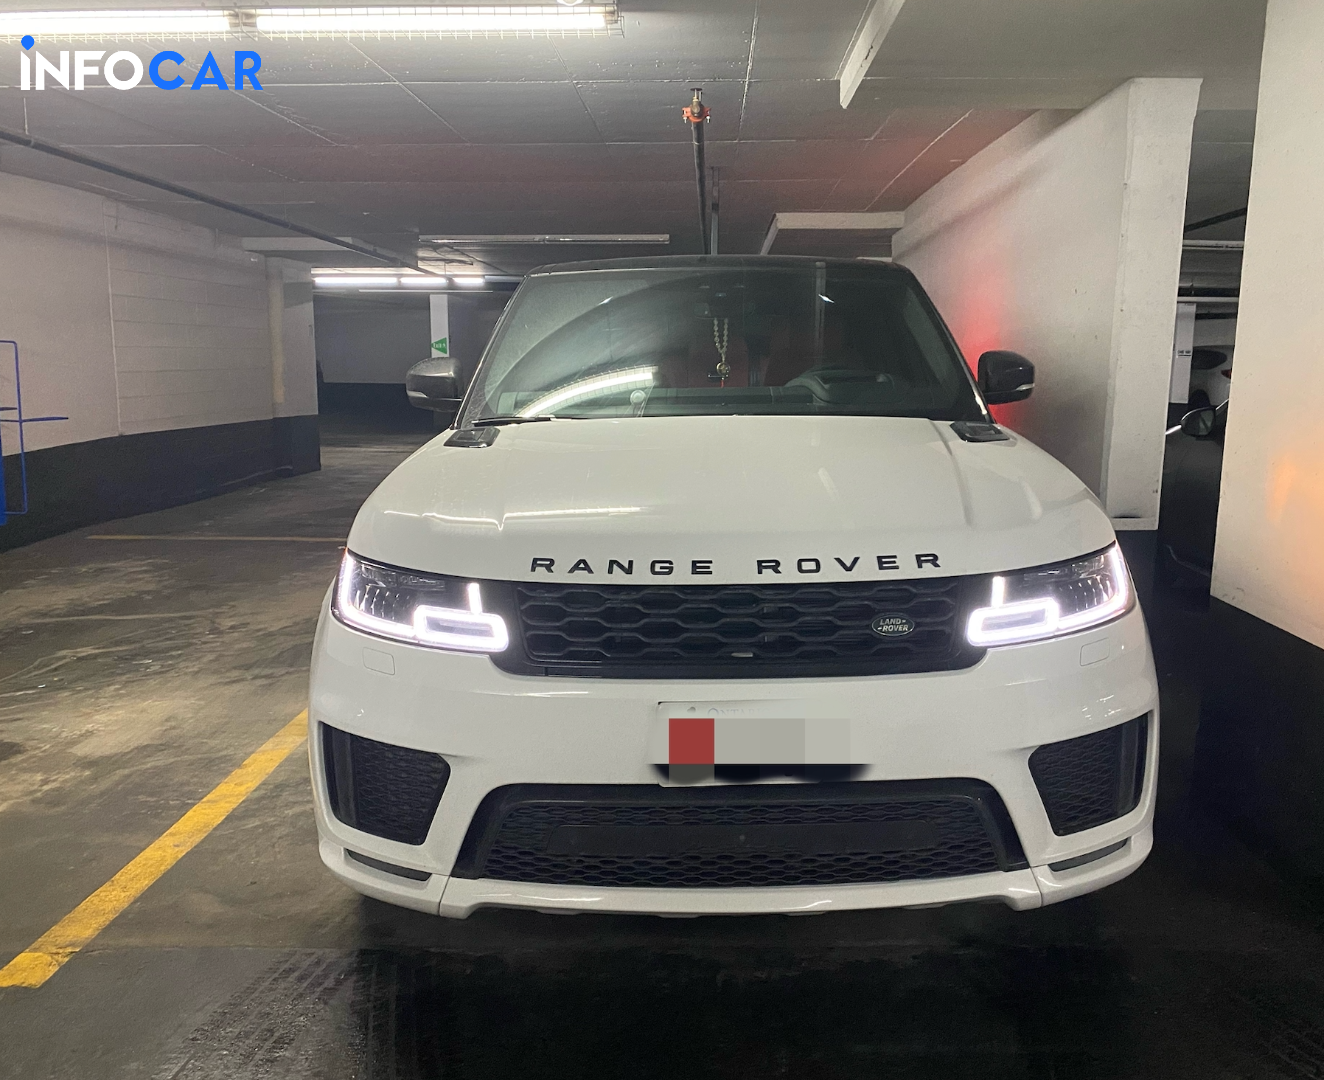 2019 Land Rover Range Rover Sport Land Rover Sport V8 Supercharged Autobiography - INFOCAR - Toronto's Most Comprehensive New and Used Auto Trading Platform